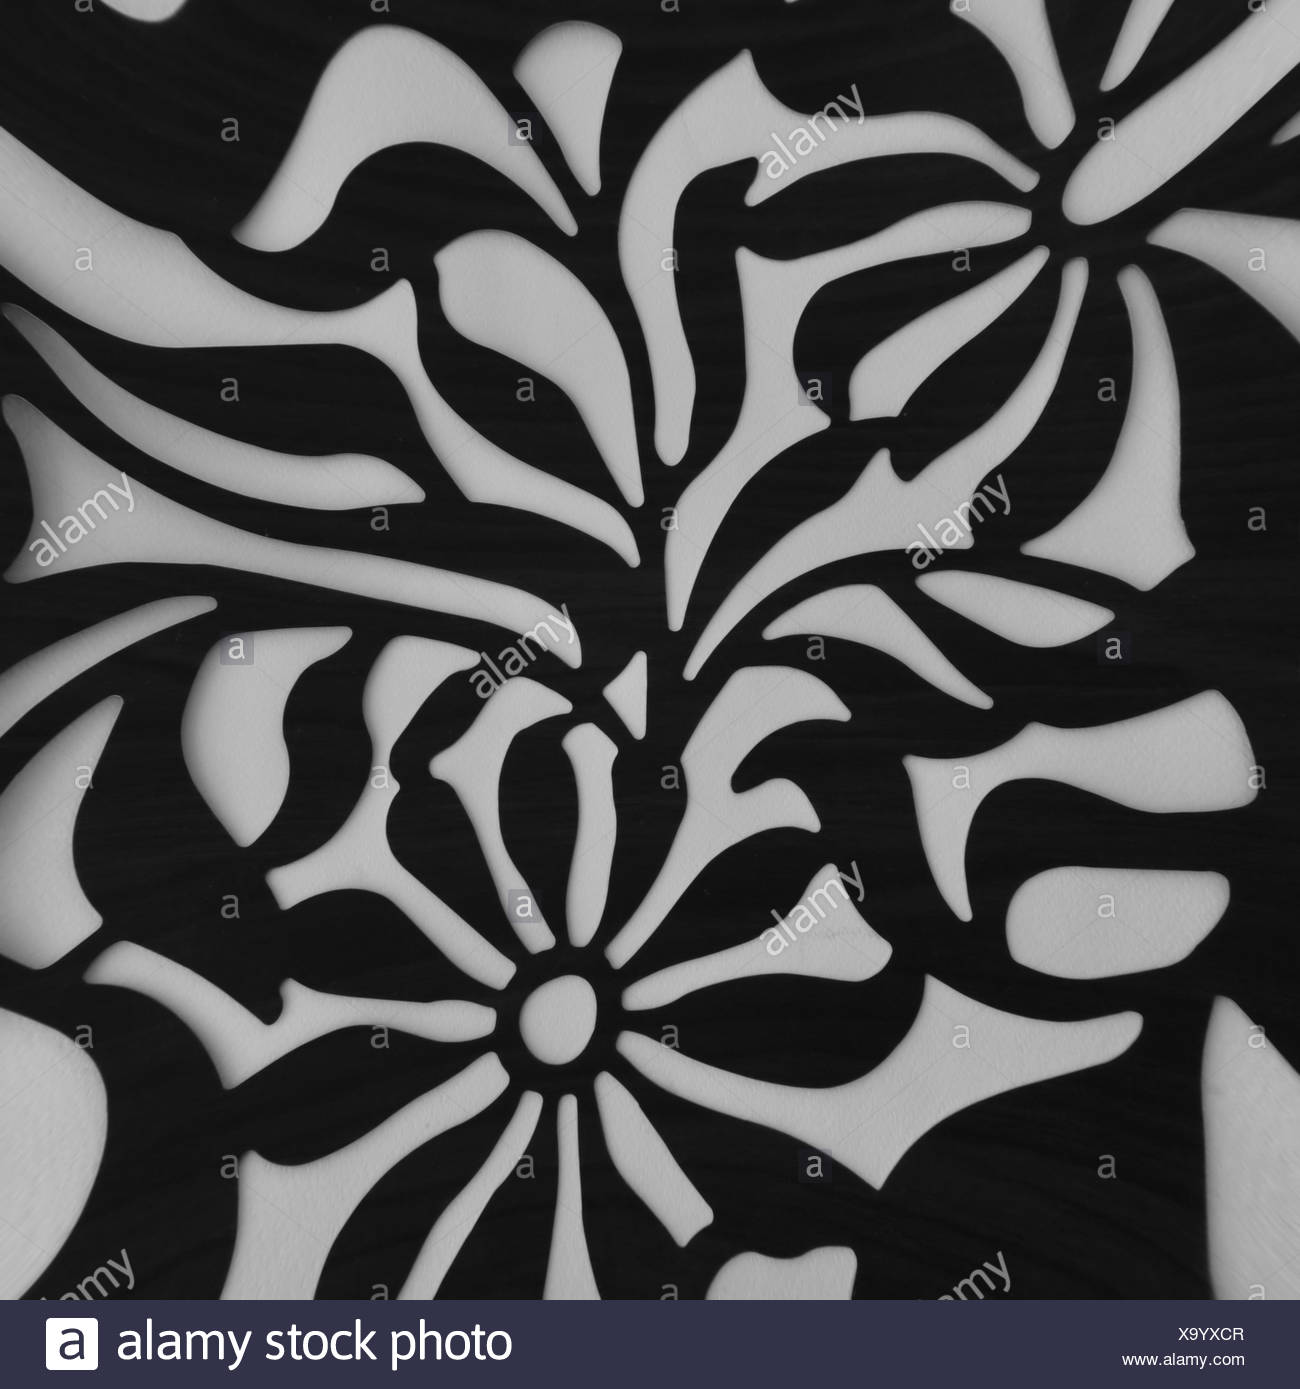 Leaf Motif Black And White Stock Photos Images Alamy